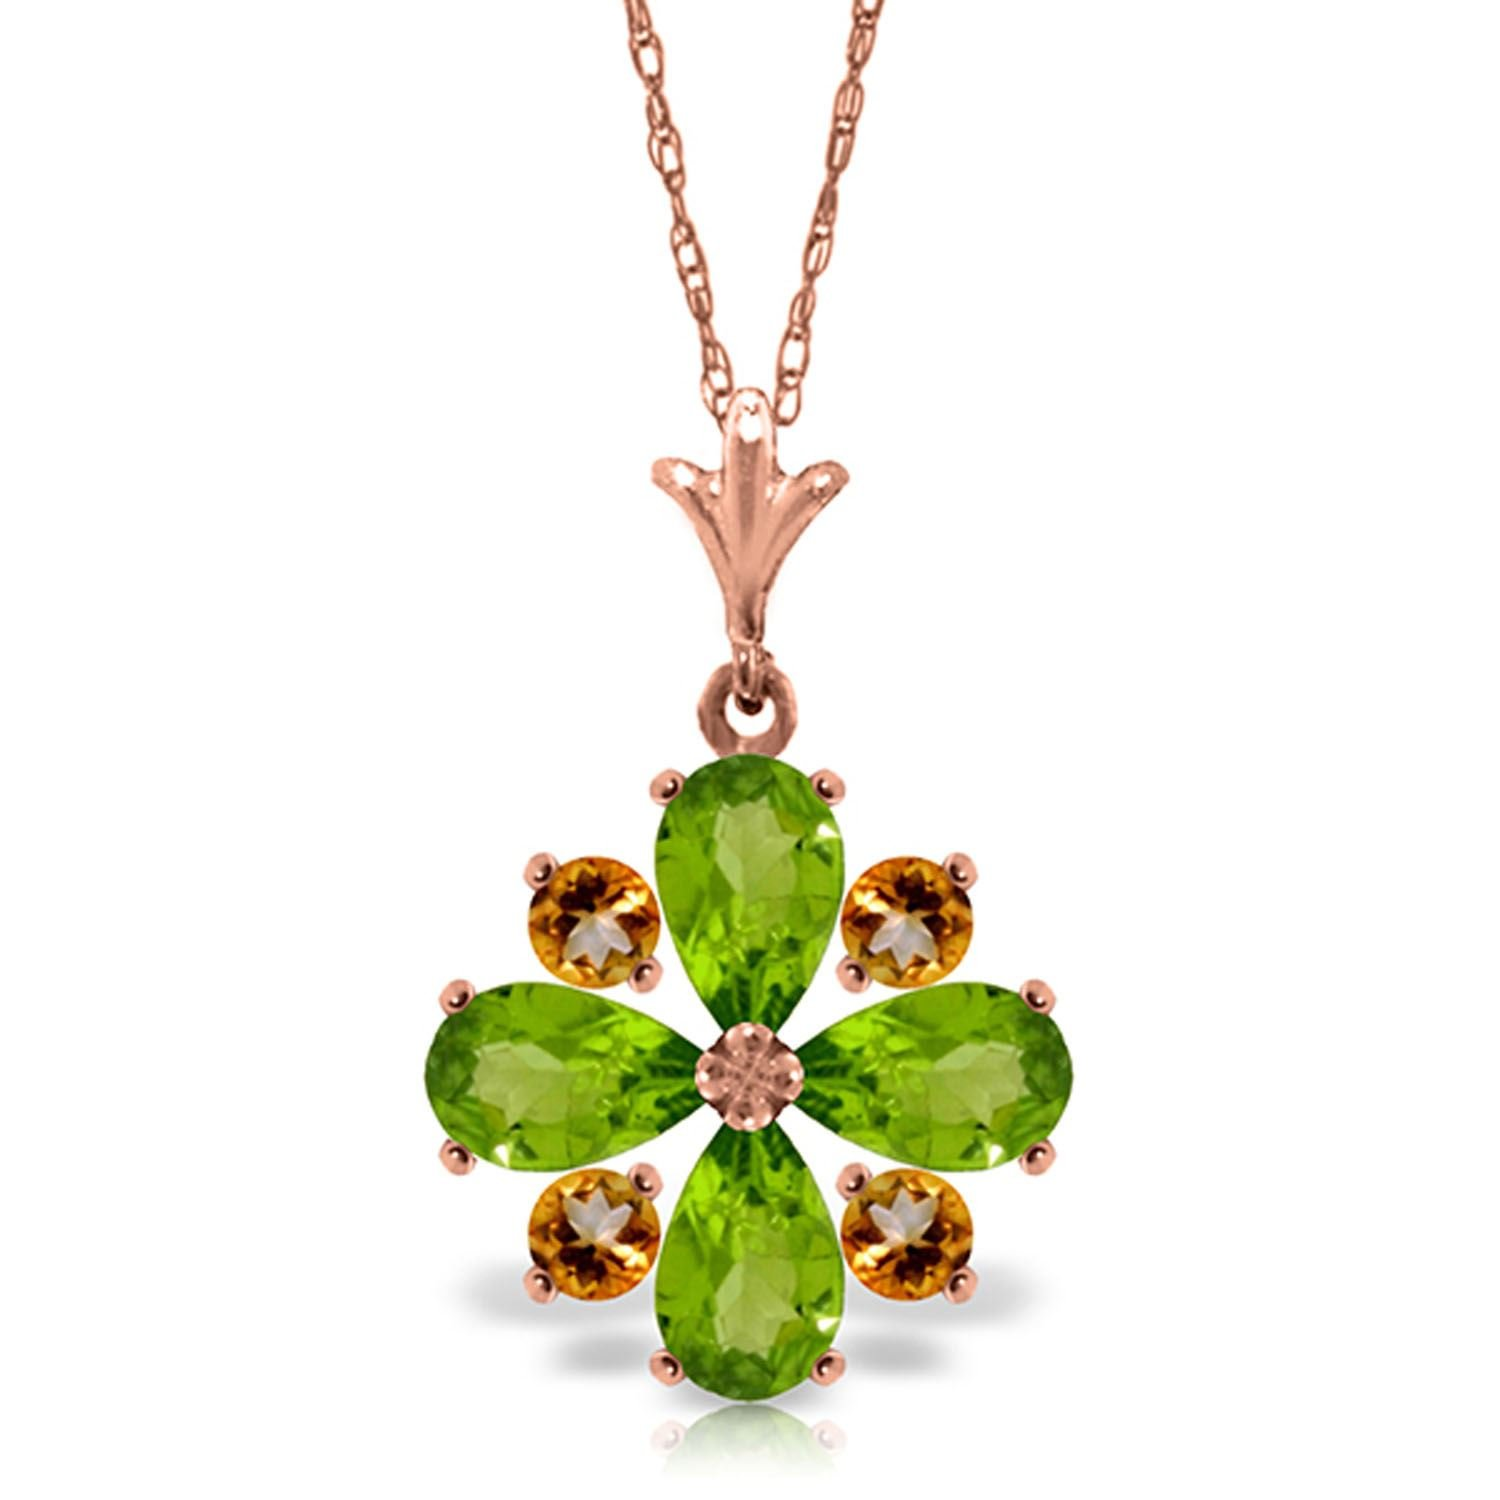 ALARRI 2.43 CTW 14K Solid Rose Gold Summer Peridot Citrine Necklace with 18 Inch Chain Length